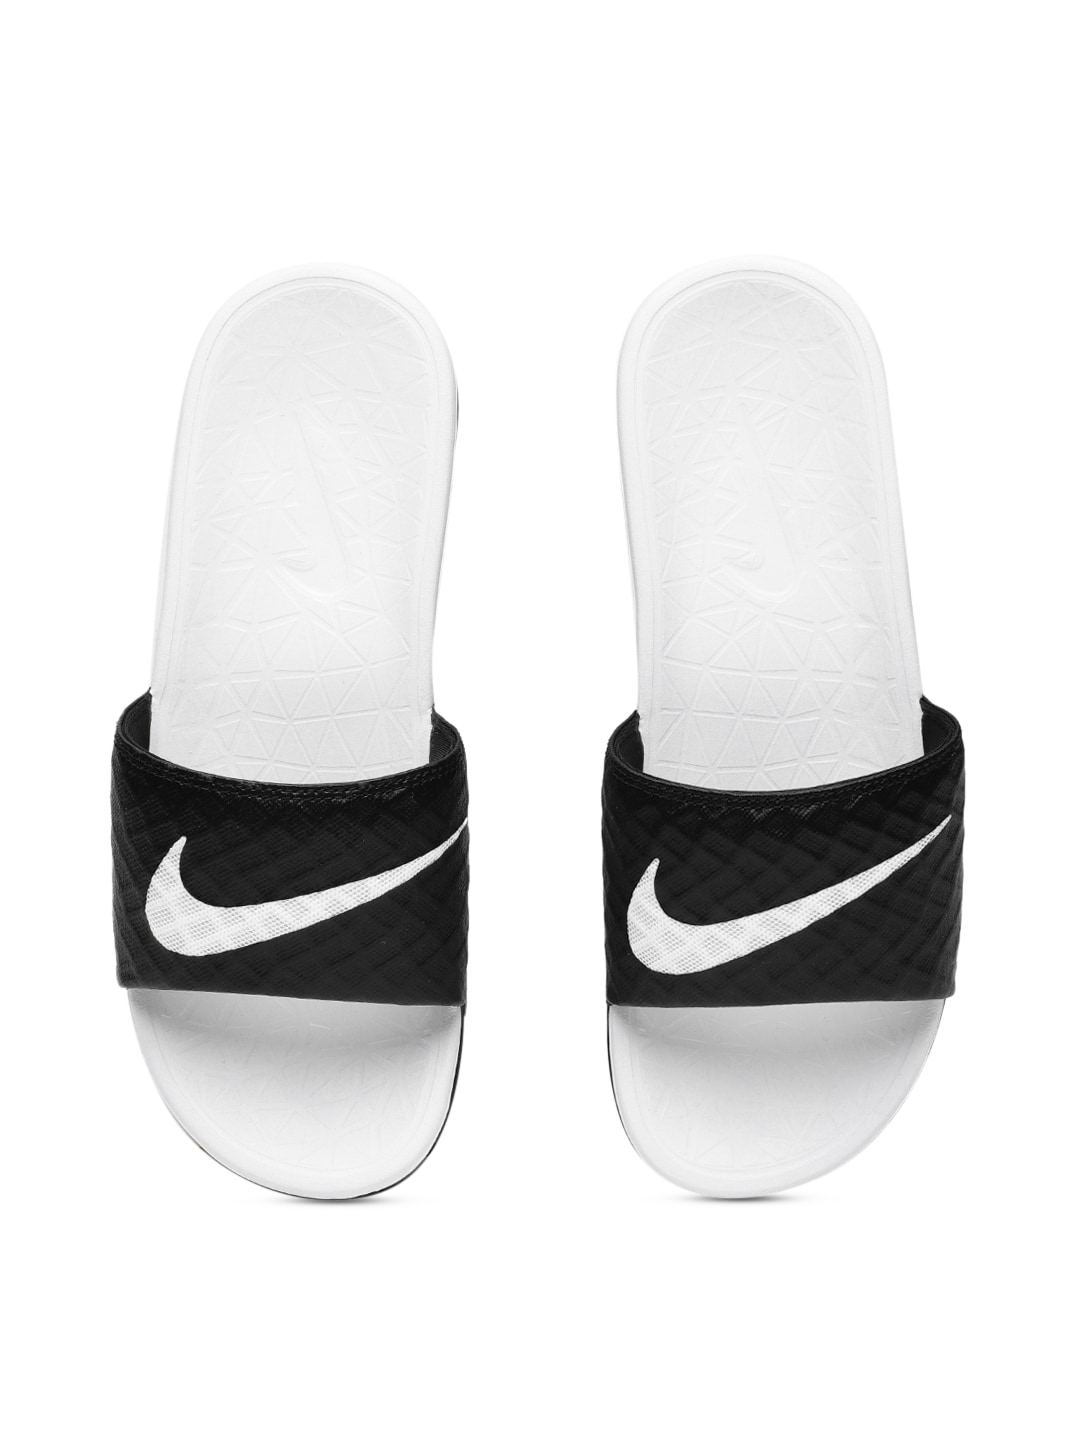 aa6e49032a394 Nike Flip-Flops - Buy Nike Flip-Flops for Men Women Online